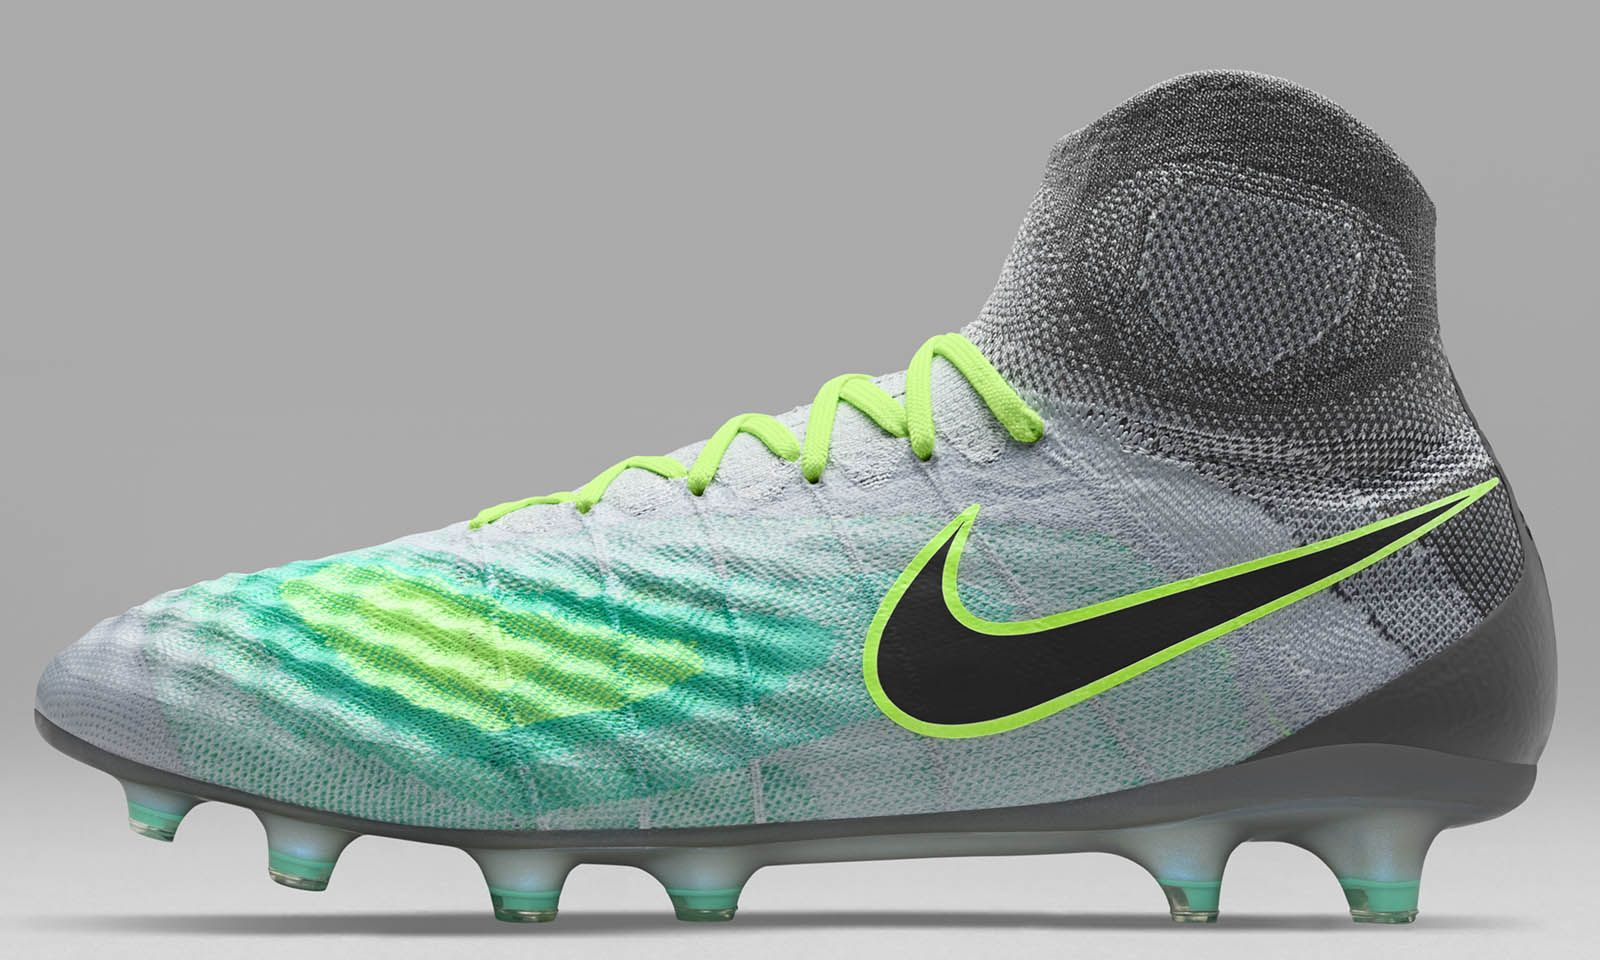 huge discount 0cd18 6e11c The Pure Platinum Nike Magista Obra II football boots introduce an  understated-yet-bold look for the second-gen Nike Magista cleats, launched  ahead of the ...